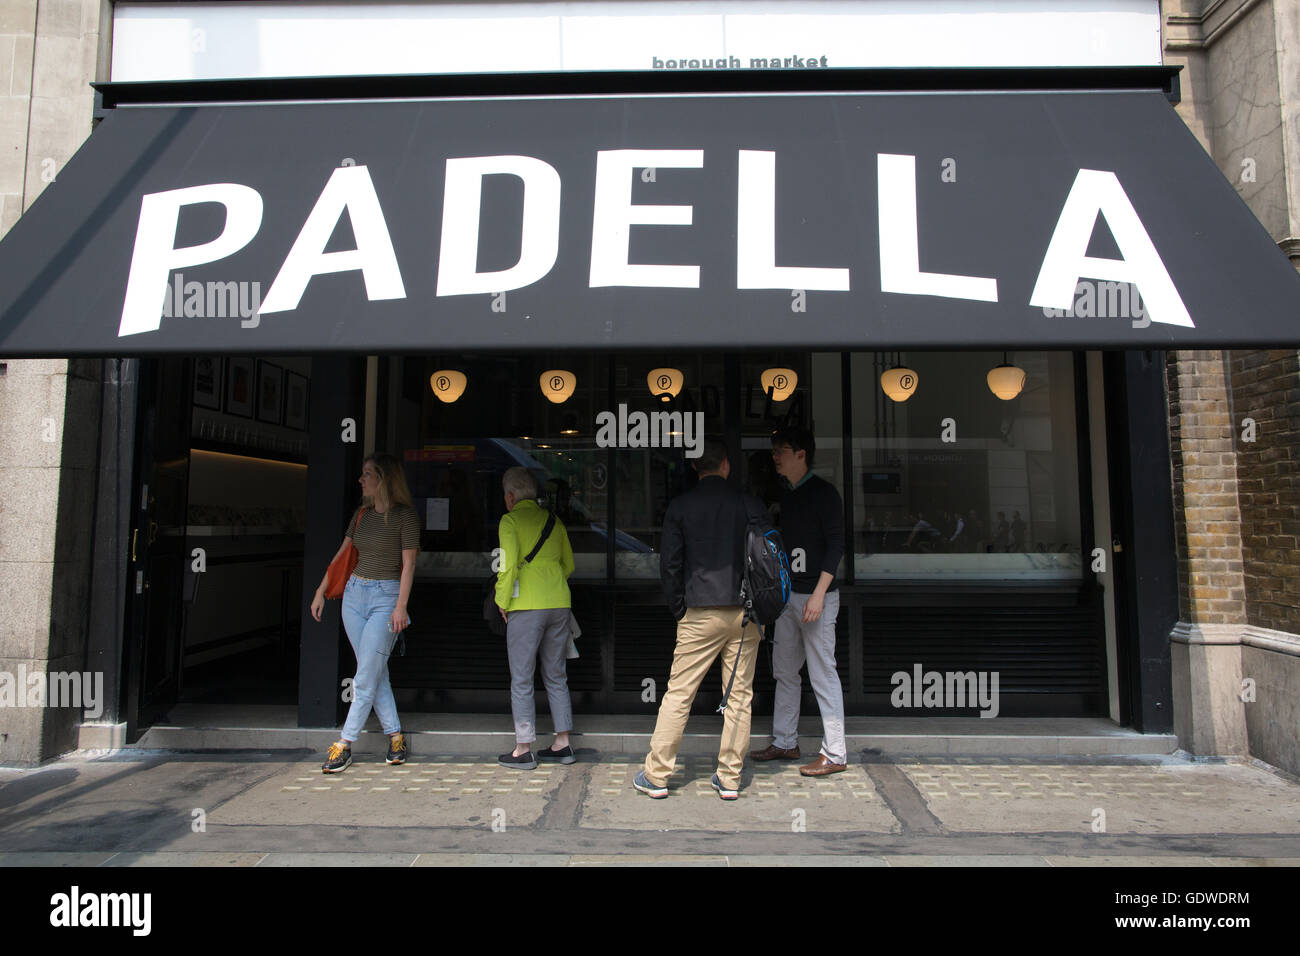 Padella, stylish new pasta restaurant, Borough Market, London, England, UK - Stock Image